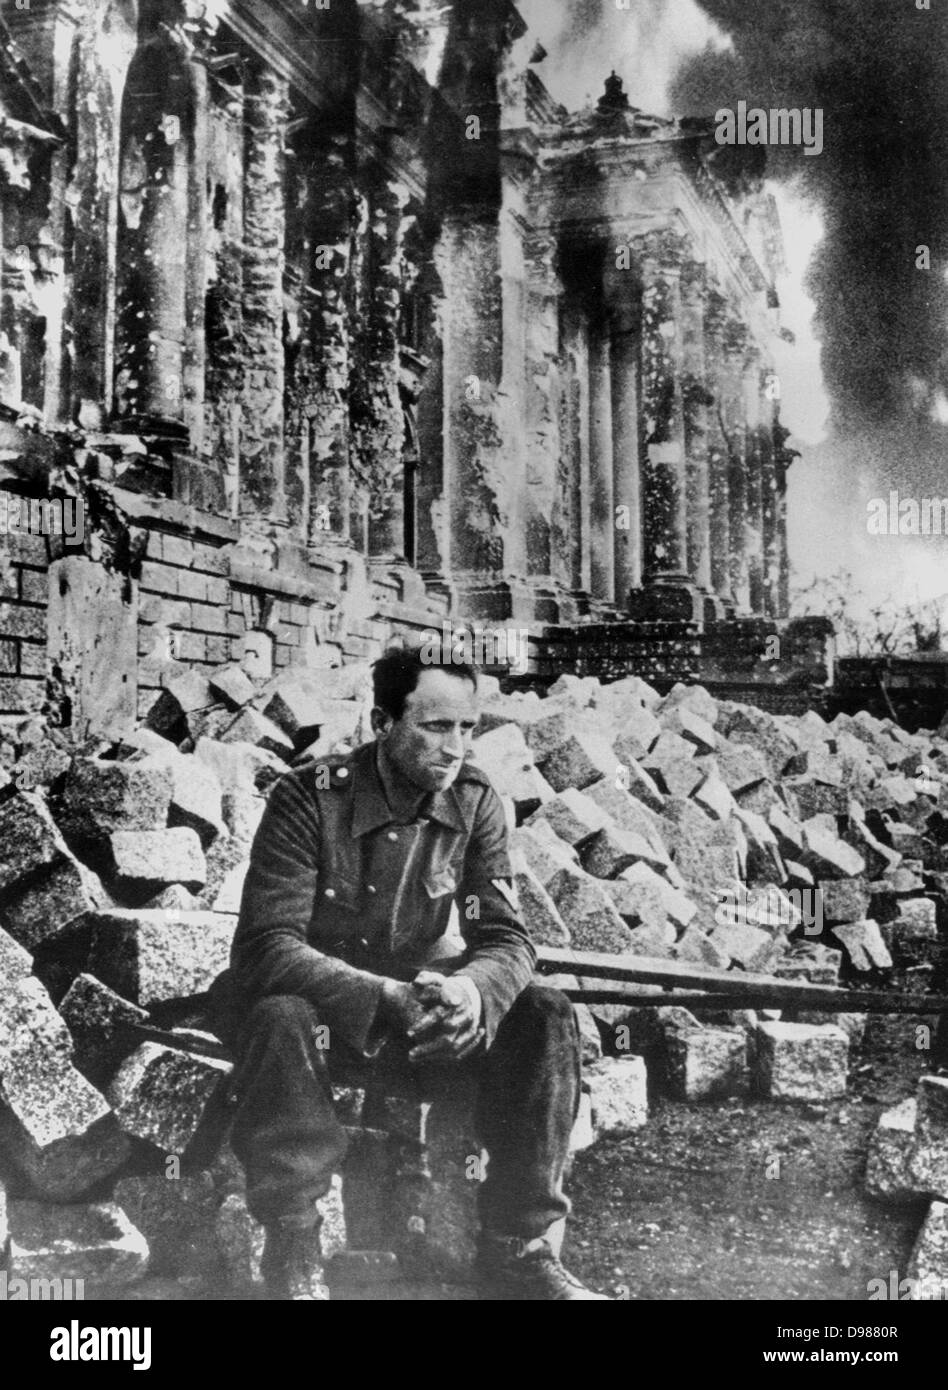 O To Ww Bing Comsquare Root 123: Second World War: German Soldier Sits Amongst The Ruins Of